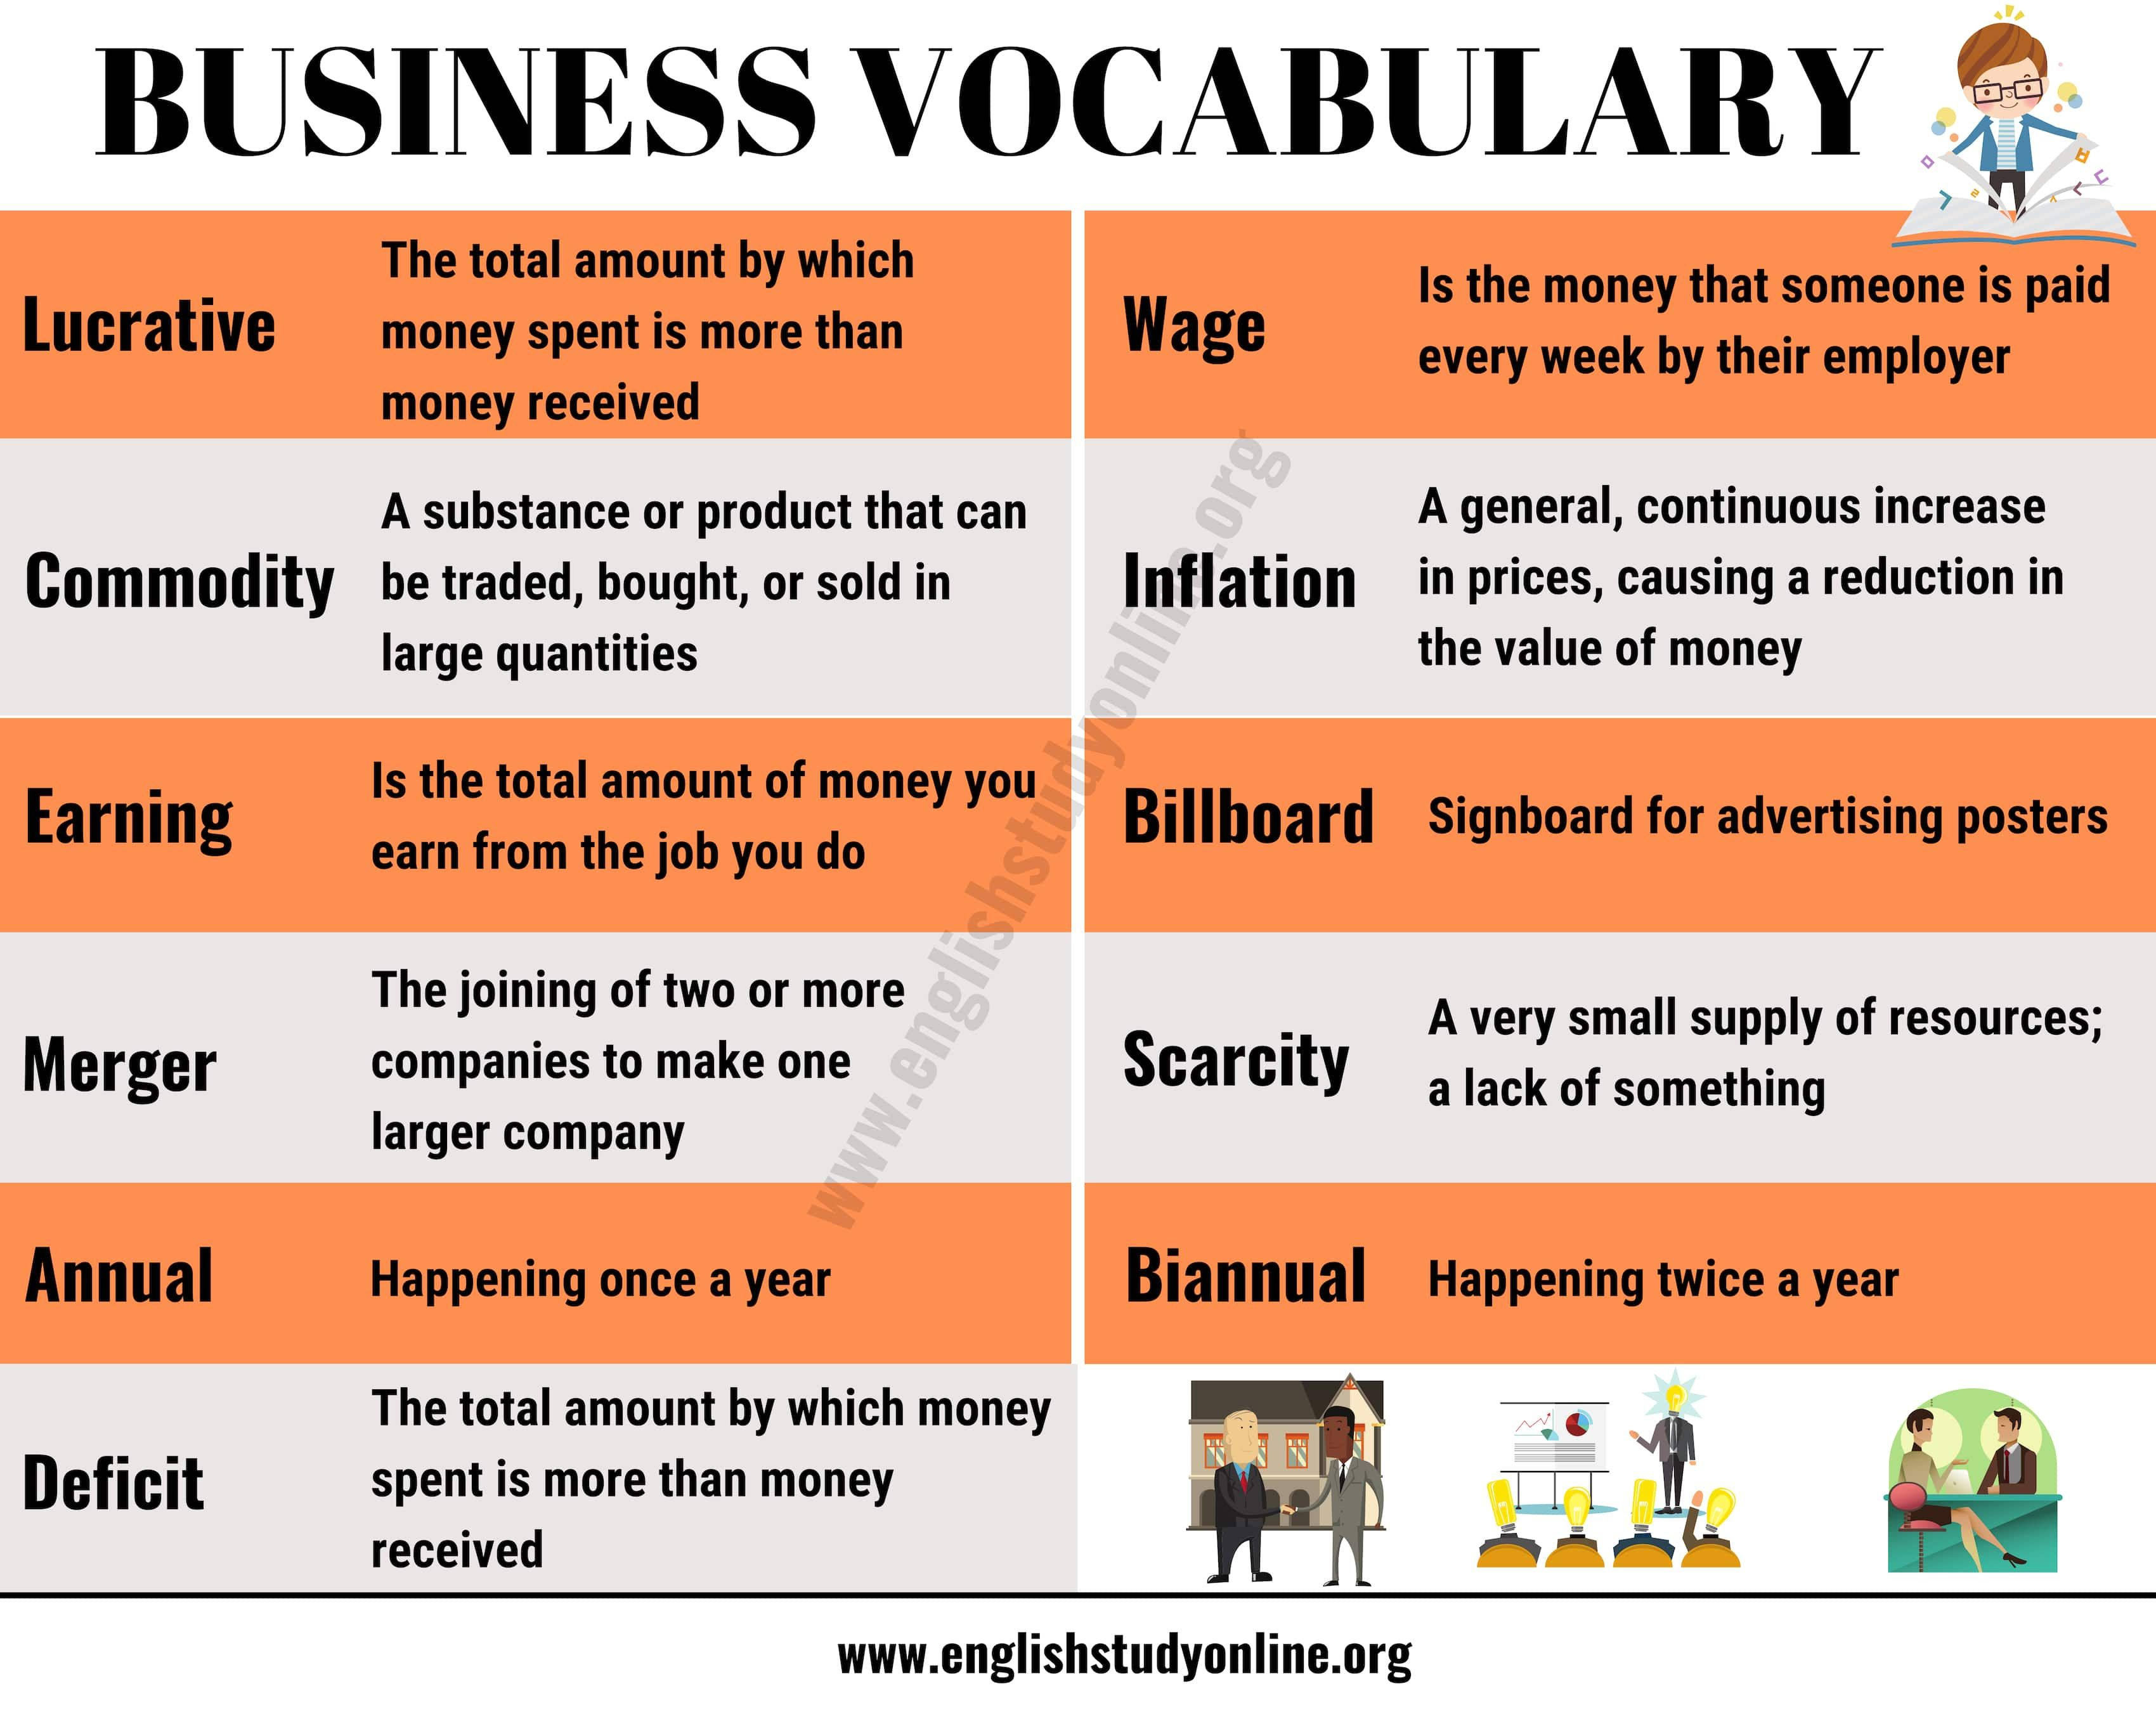 Business Vocabulary List Of 11 Important Words Used In Business English Study Online In 2020 Good Vocabulary Good Vocabulary Words Vocabulary